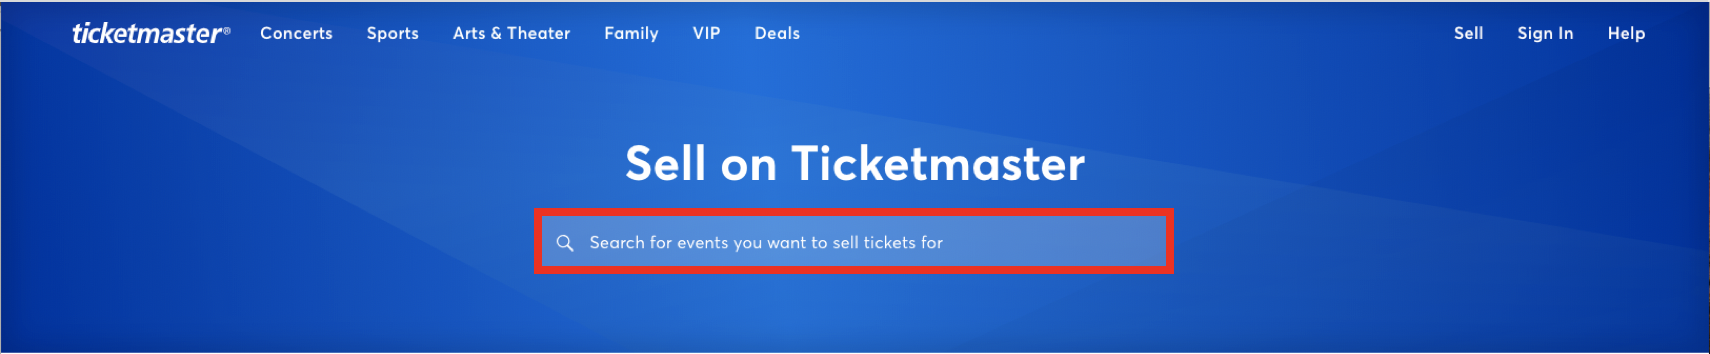 Selling Your Tickets on Ticketmaster   Ticketmaster Blog